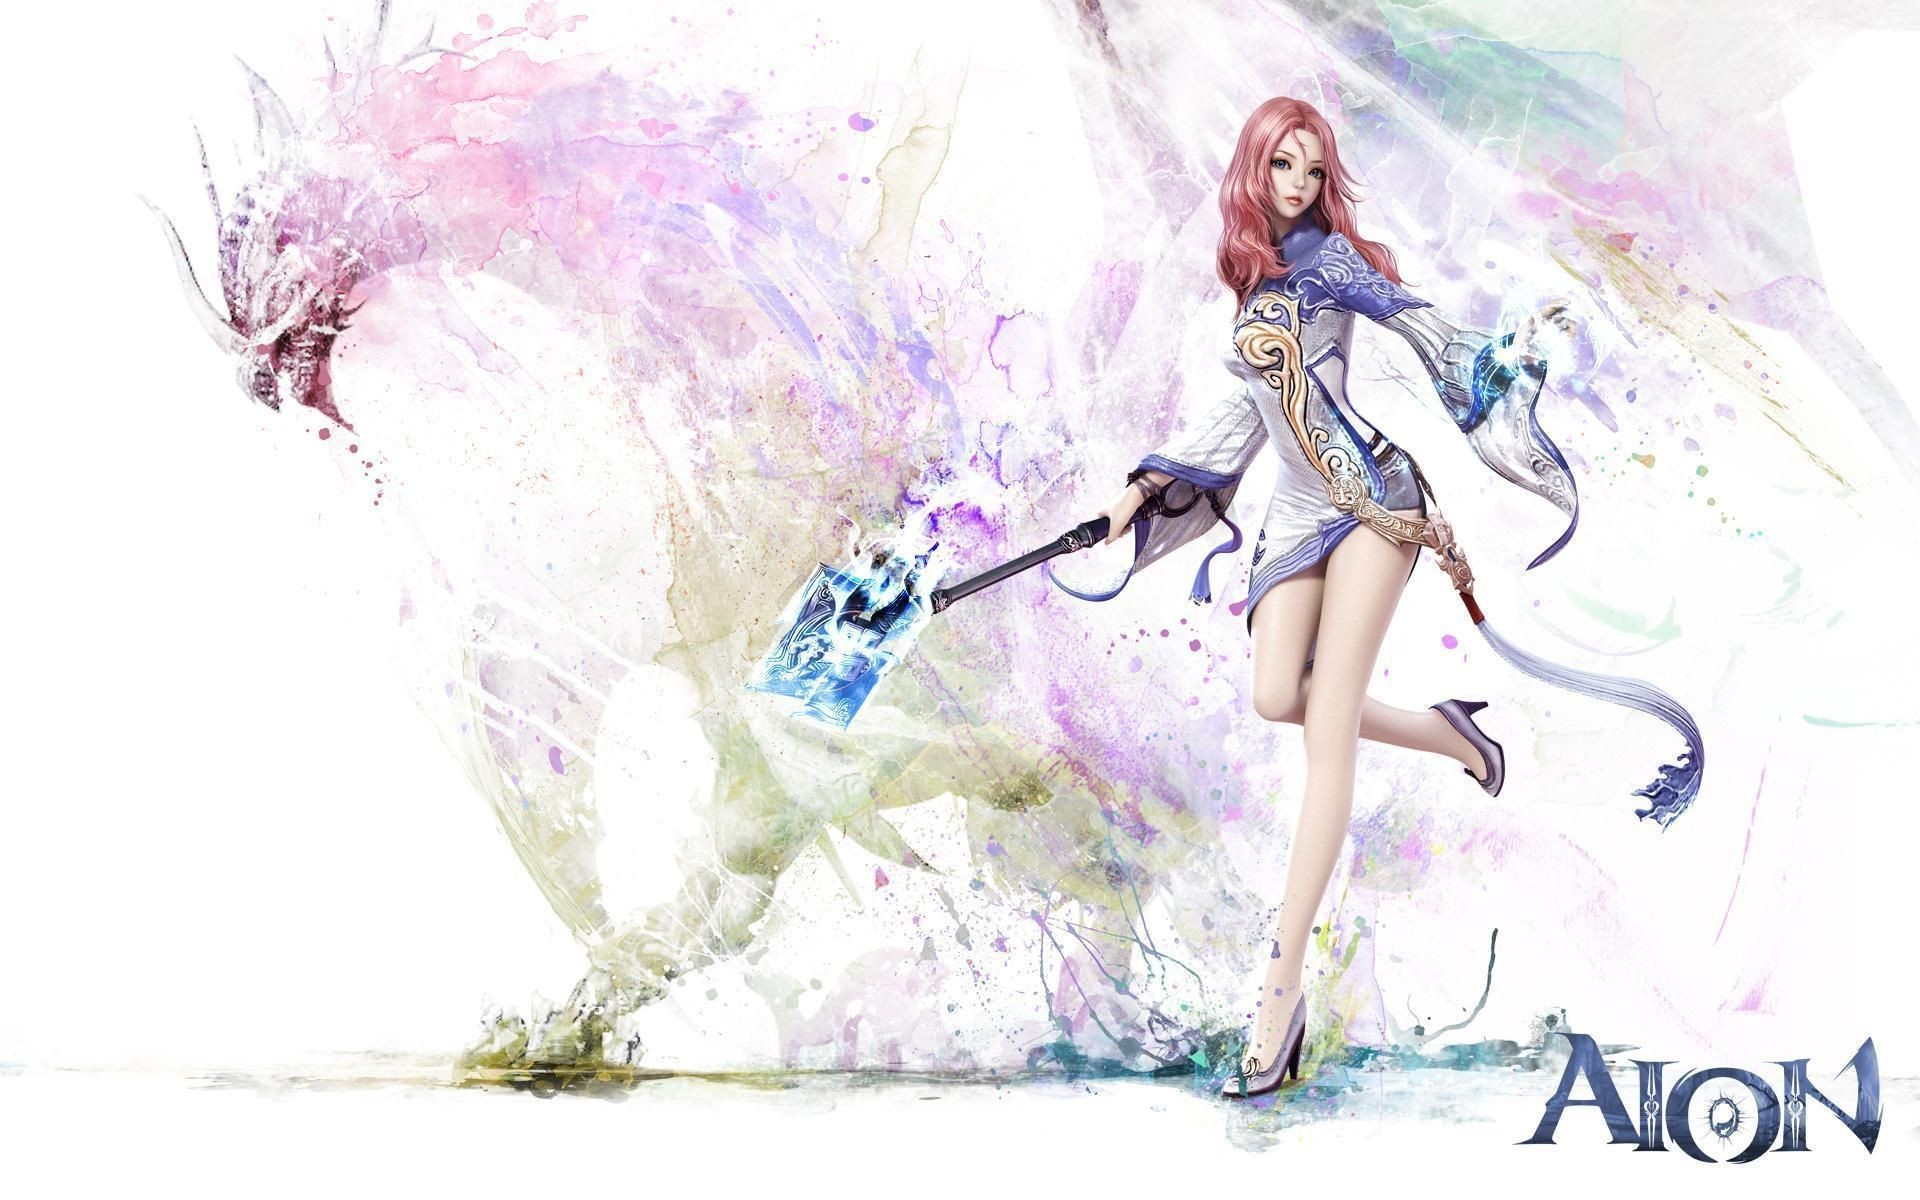 Res: 1920x1200, Aion Game Girl Beauty #Aion #Beauty #Game #Games #gaming #Girl